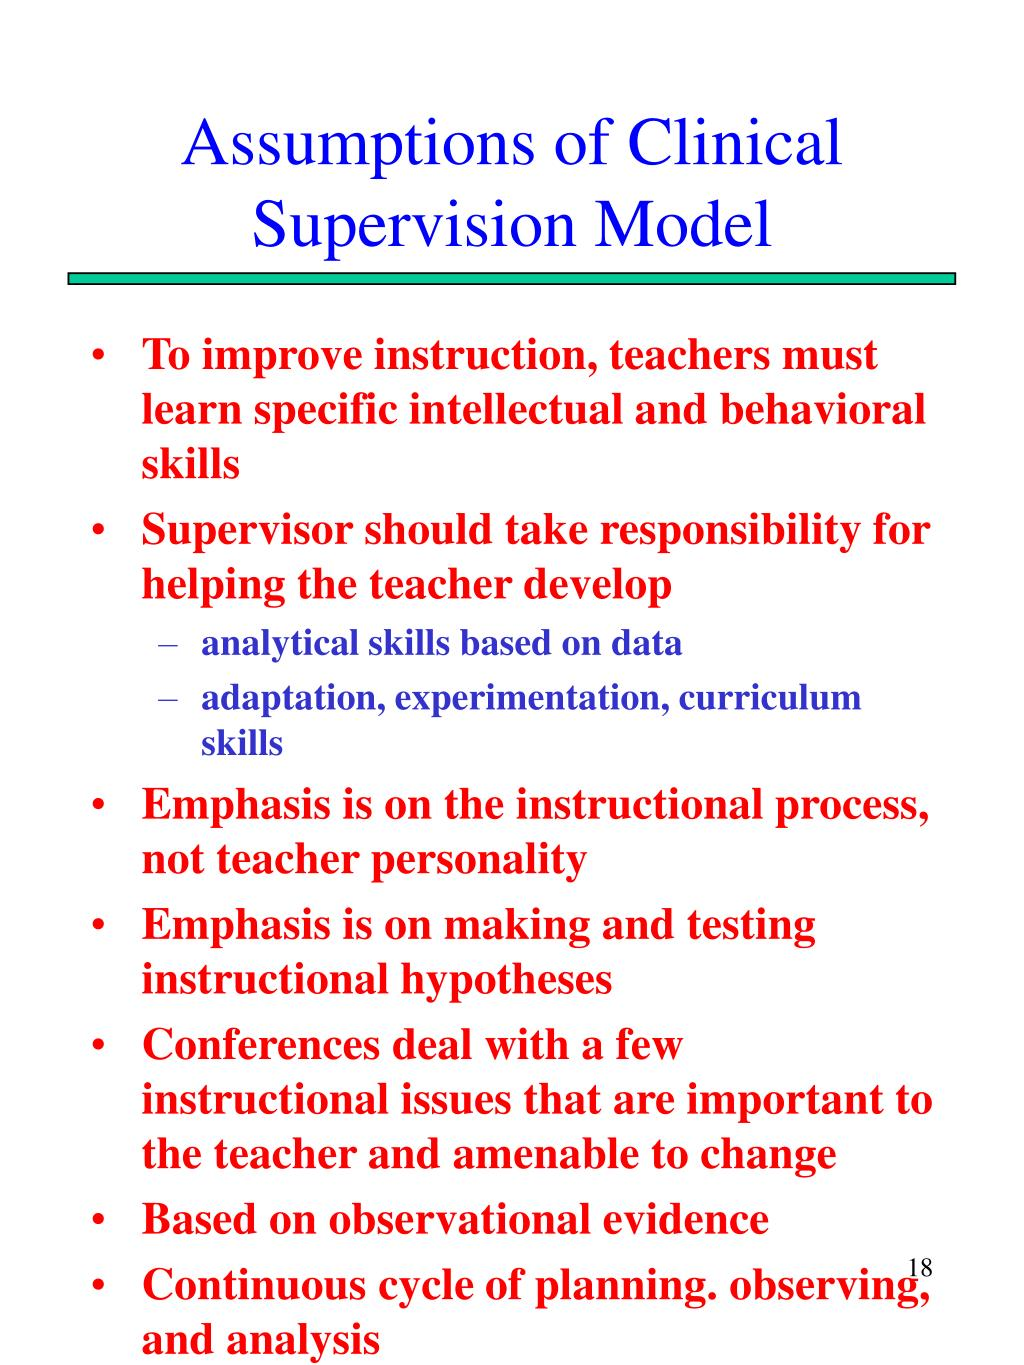 Assumptions of Clinical Supervision Model